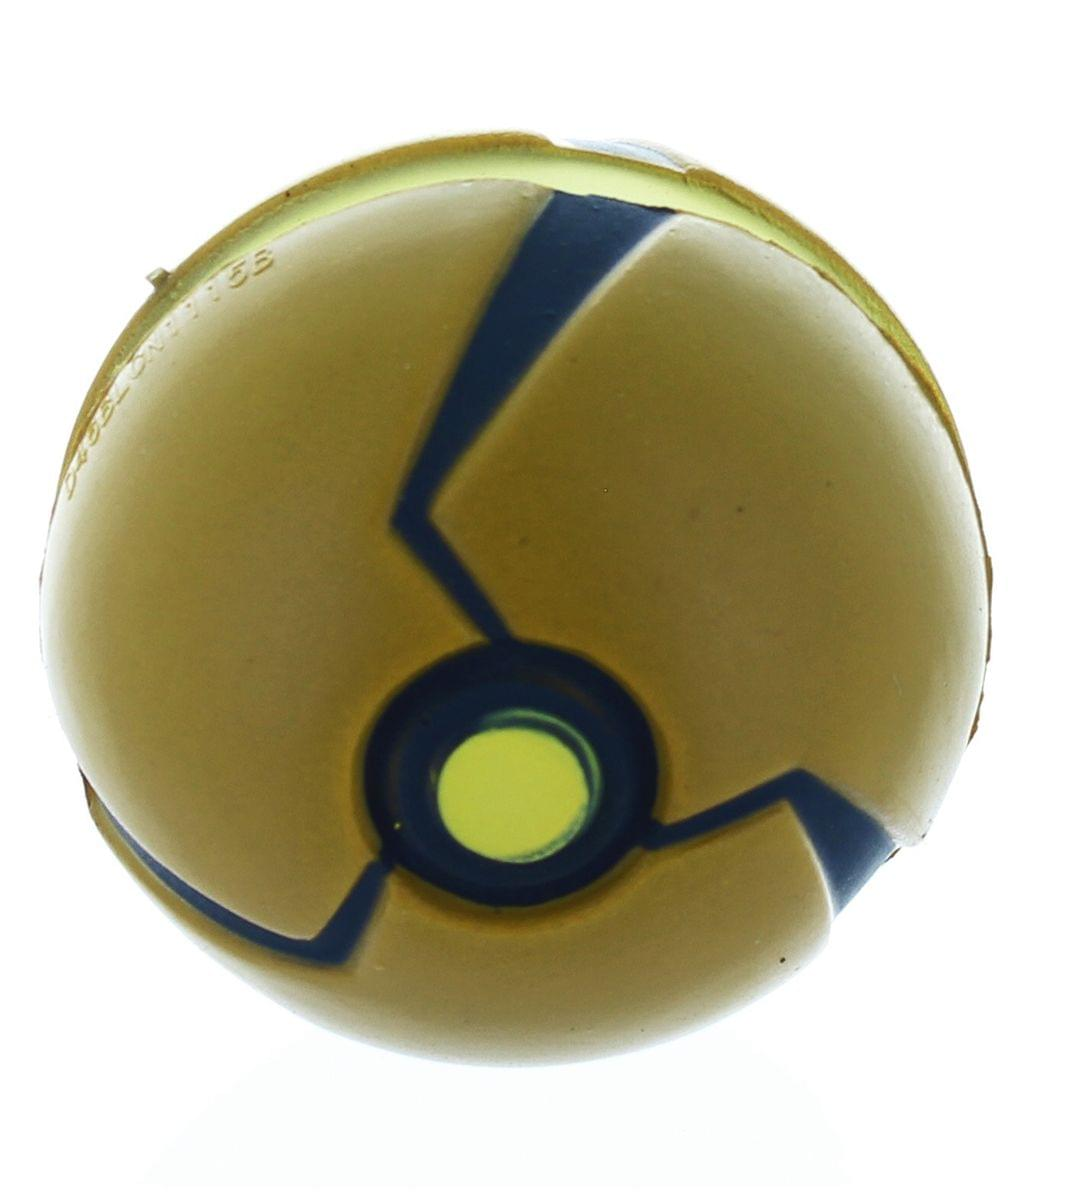 Metroid Morph Ball Stress Reliever (Nerd Block Exclusive)